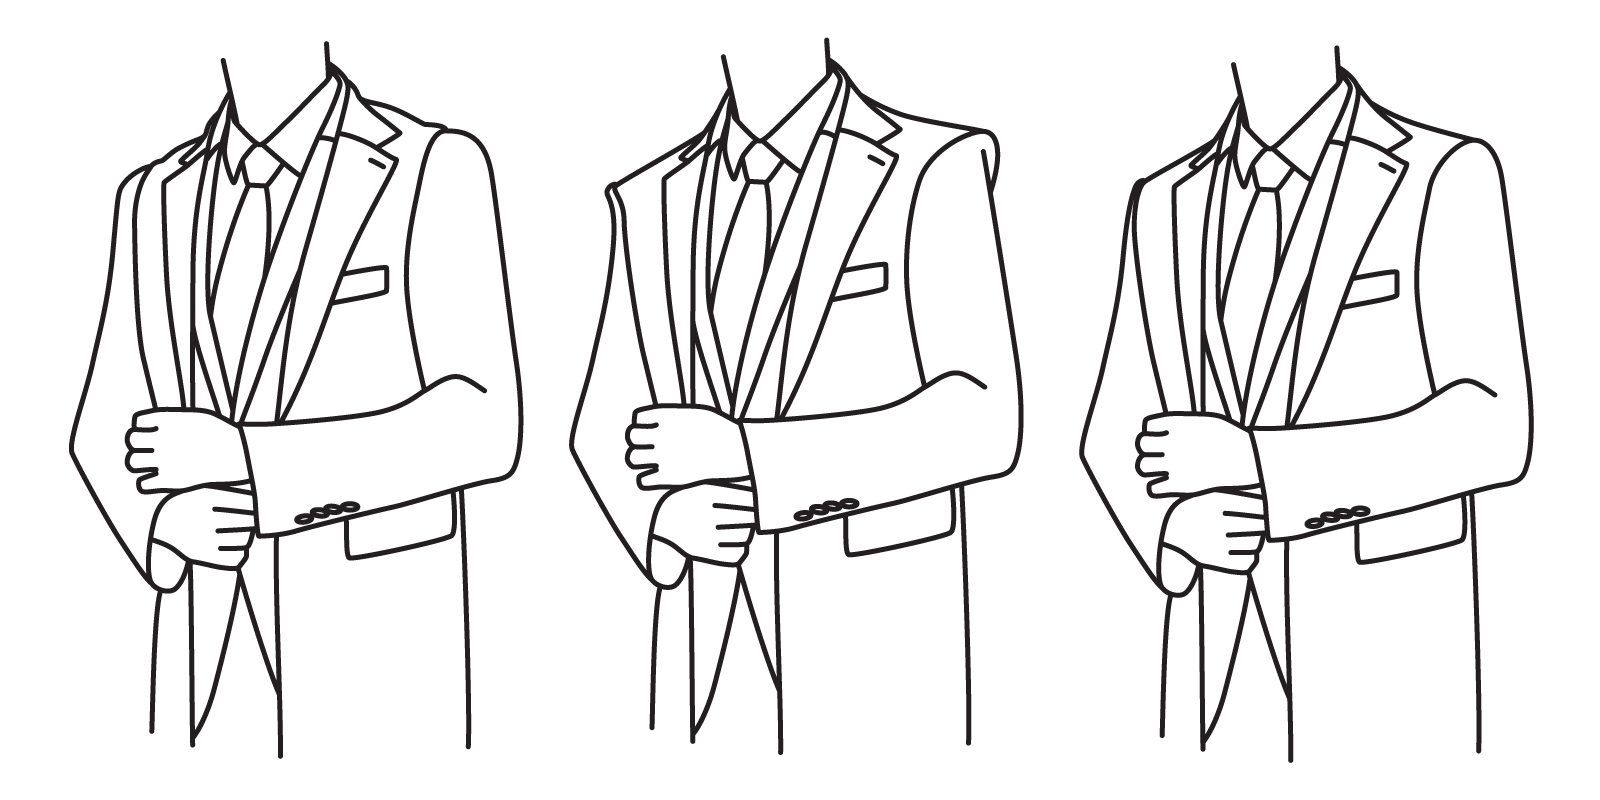 The shoulders of the coat should not end before the shoulders of your suit jacket (left), or extend over them (center). They should be aligned with shoulders of your suit jacket (right).